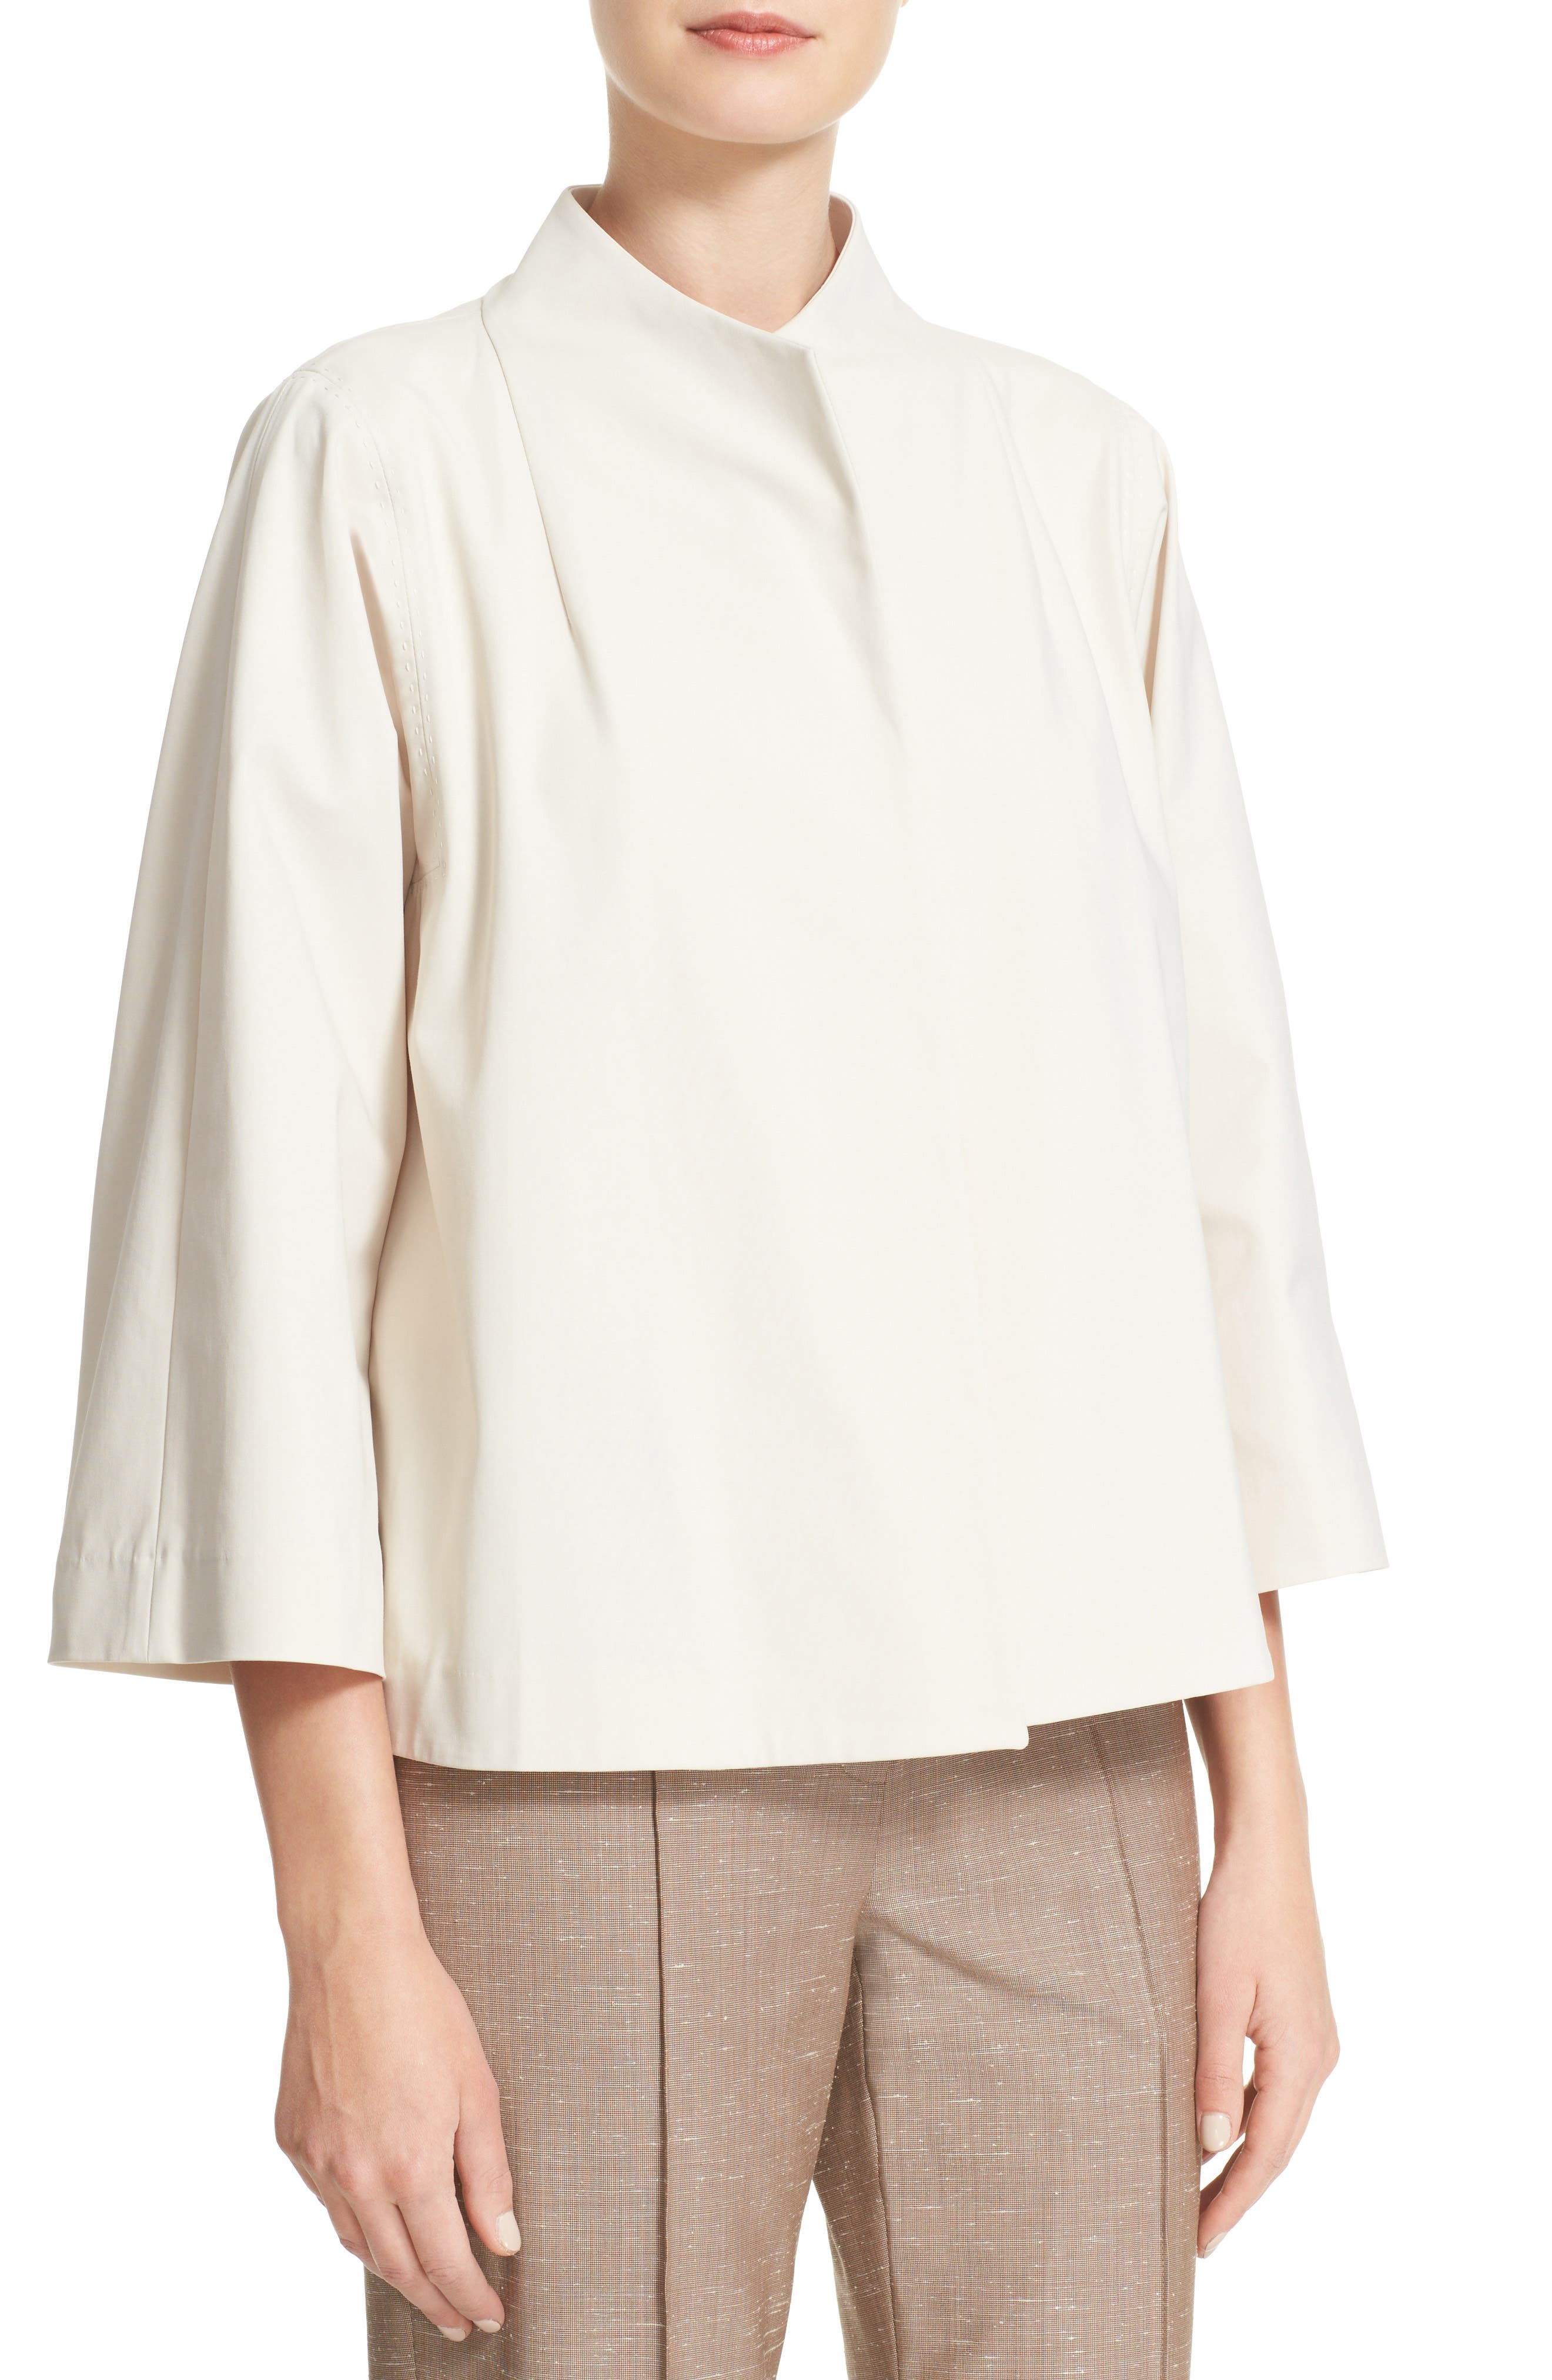 Kirby Funnel Neck Jacket,                             Alternate thumbnail 4, color,                             901